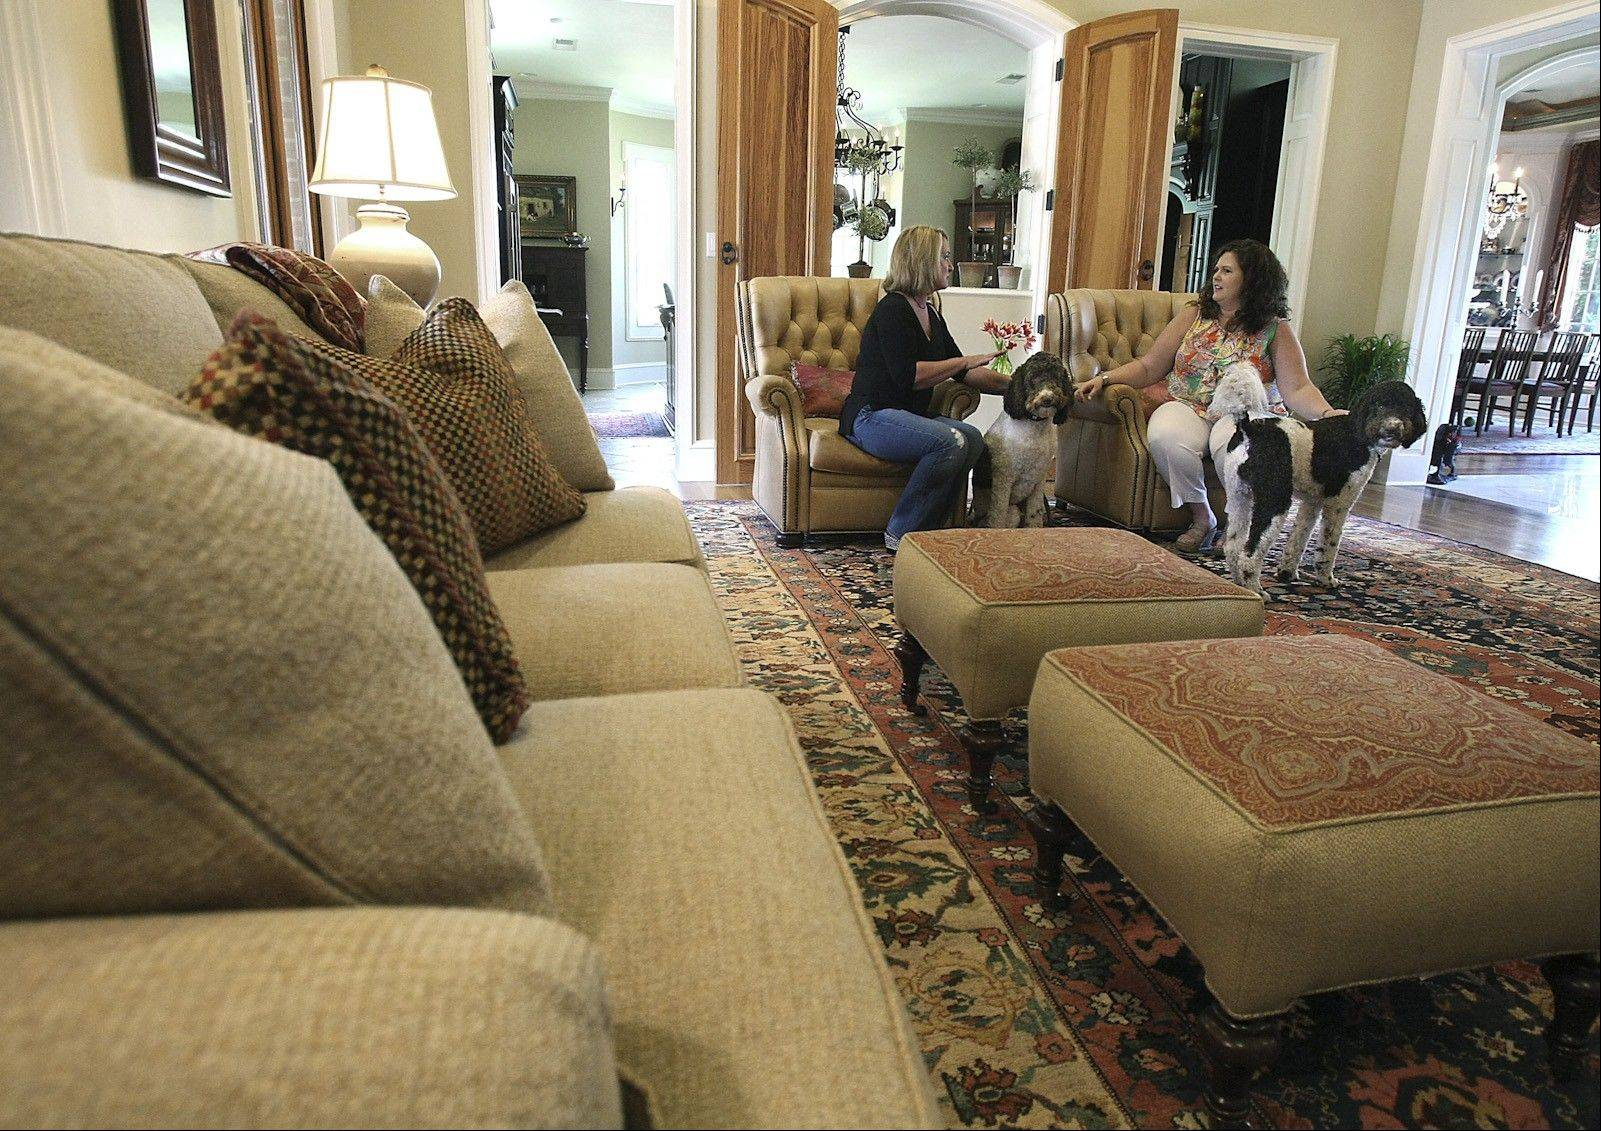 Rita Christian, left, and Stacy McSpadden relax in a pair of U.S.-made, matching aniline dyed leather recliners from Hancock and Moore. Also shown are Christian�s Labradoodles, Napoleon and Josephine